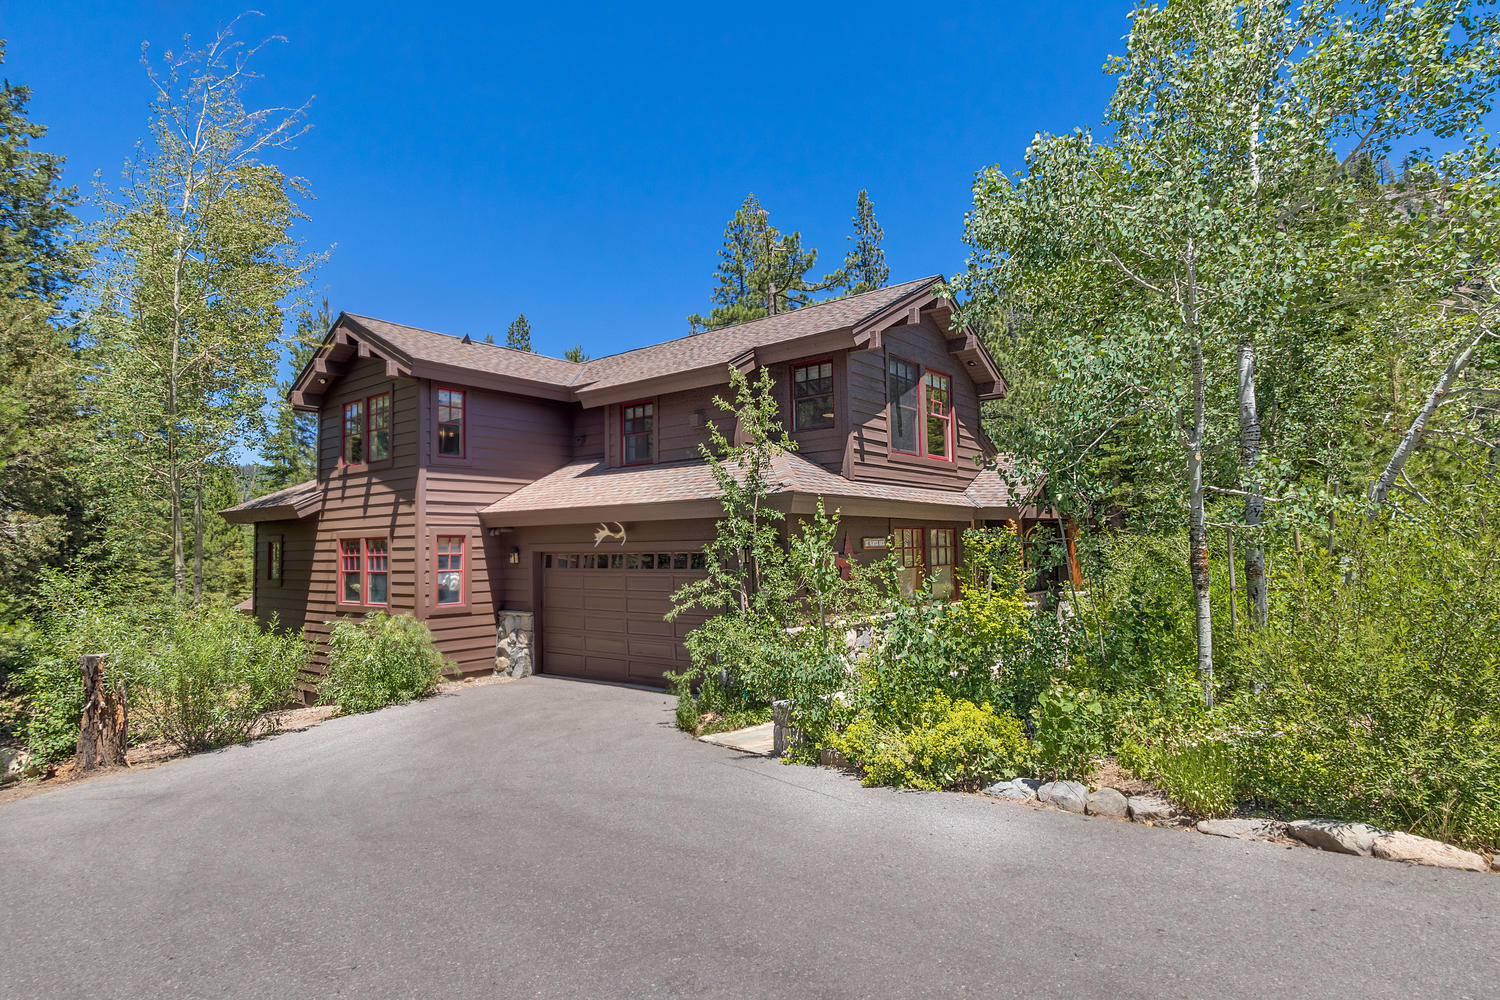 Lake tahoe rental trails end lodge at painted rock for Trail lodge